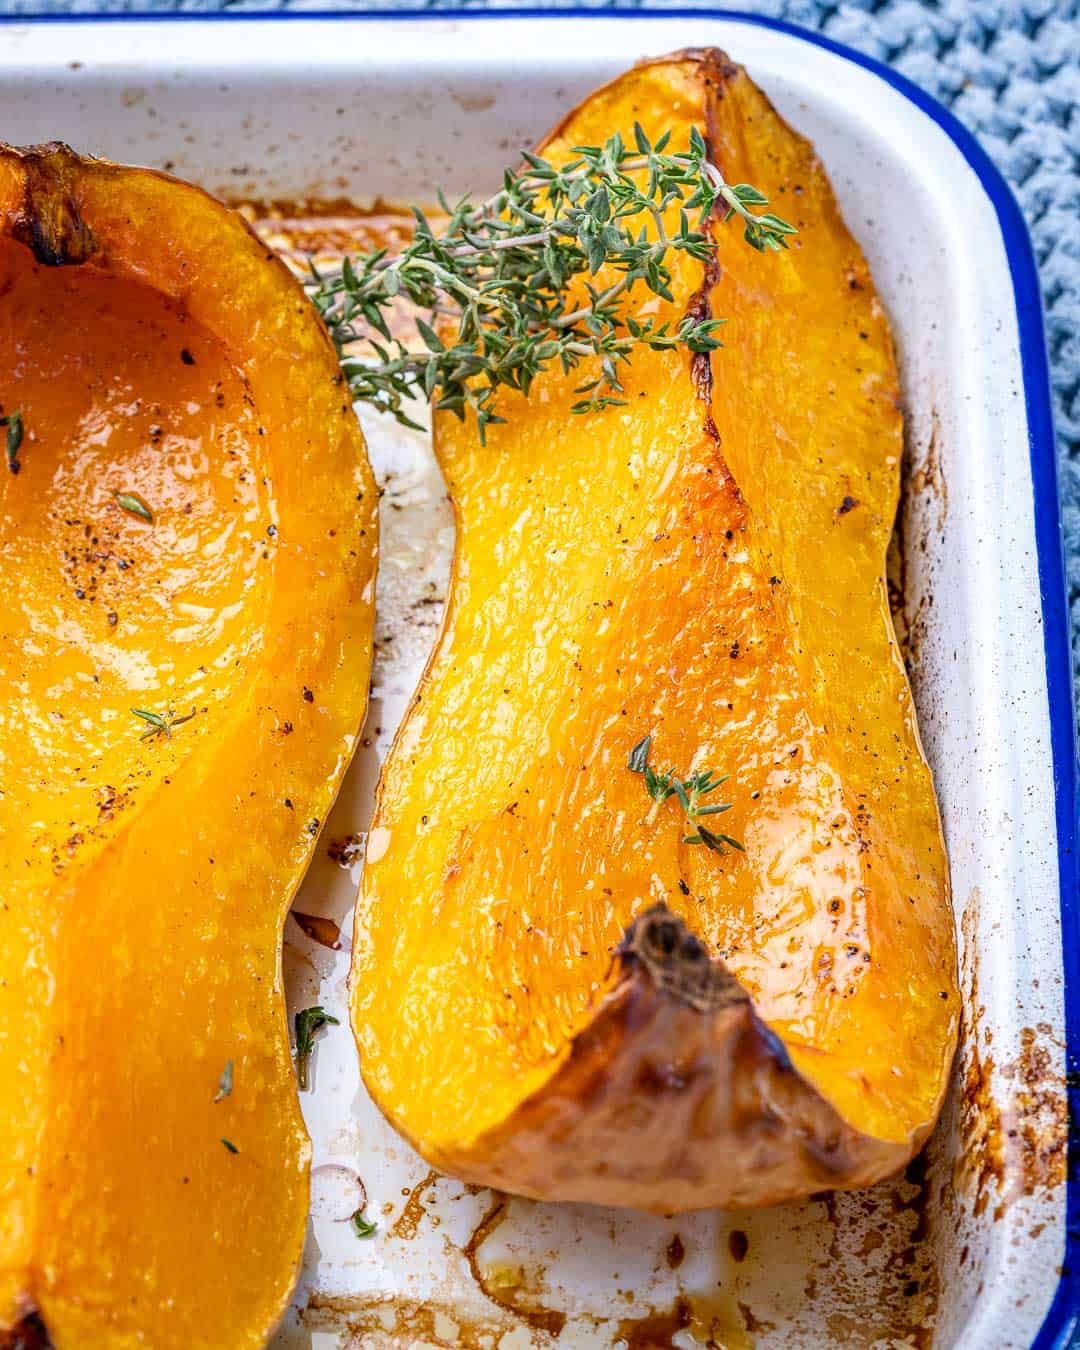 Wedge of roasted butternut squash with fresh herbs